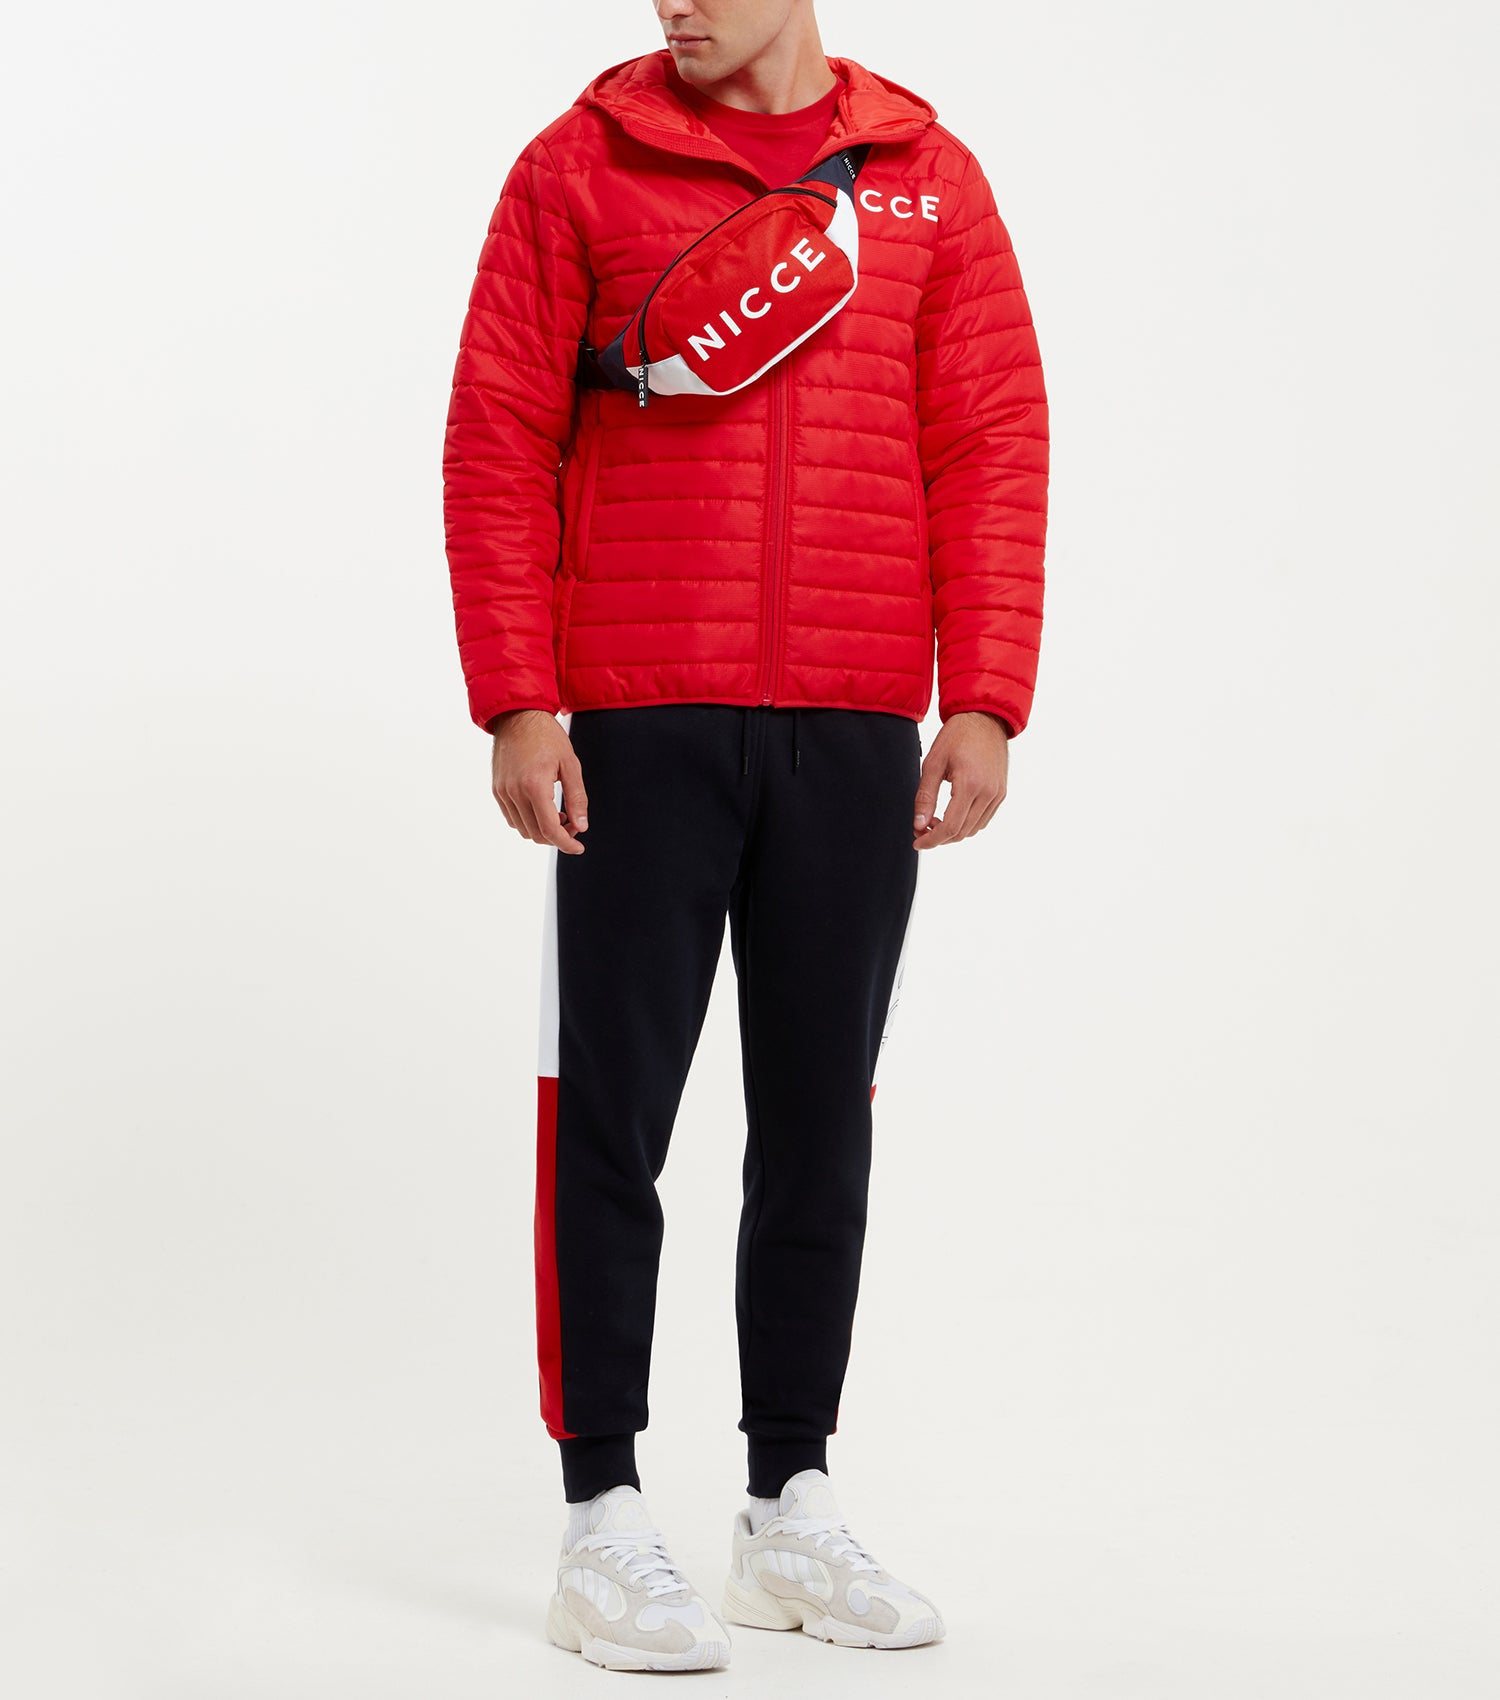 fc19c74aa8 ... Aspen jacket in red. Features quilted design in a ripstop fabric